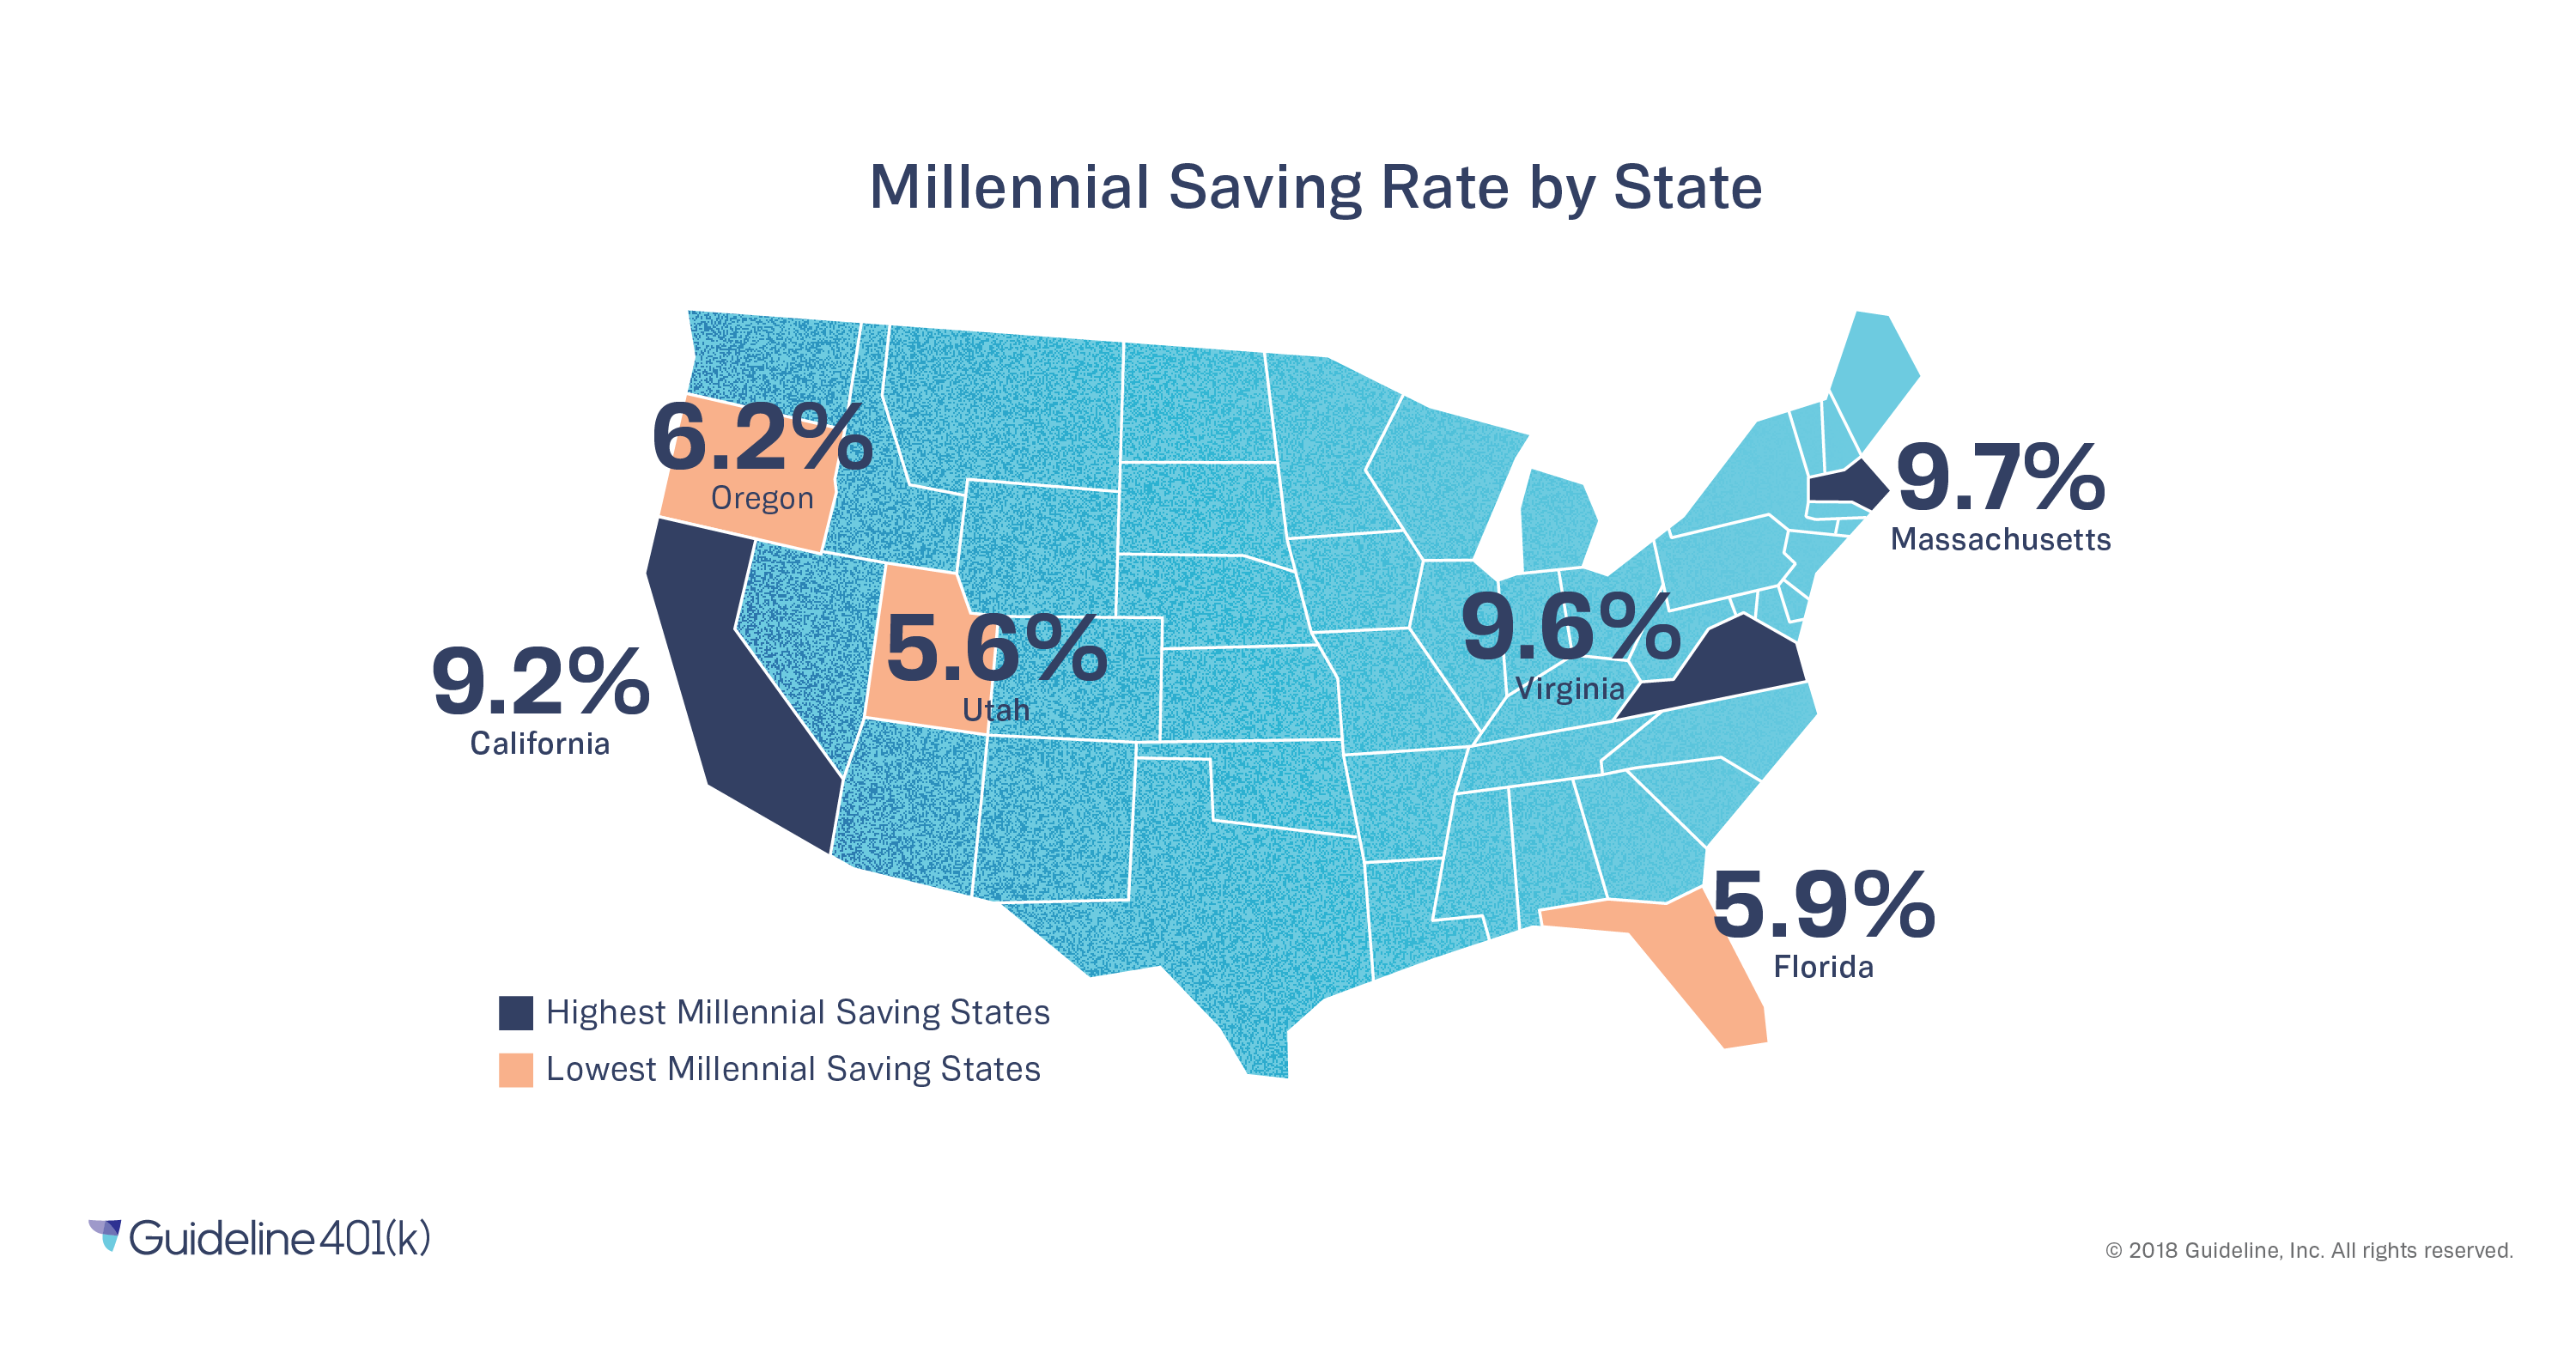 Millennial retirement savings rates by industry